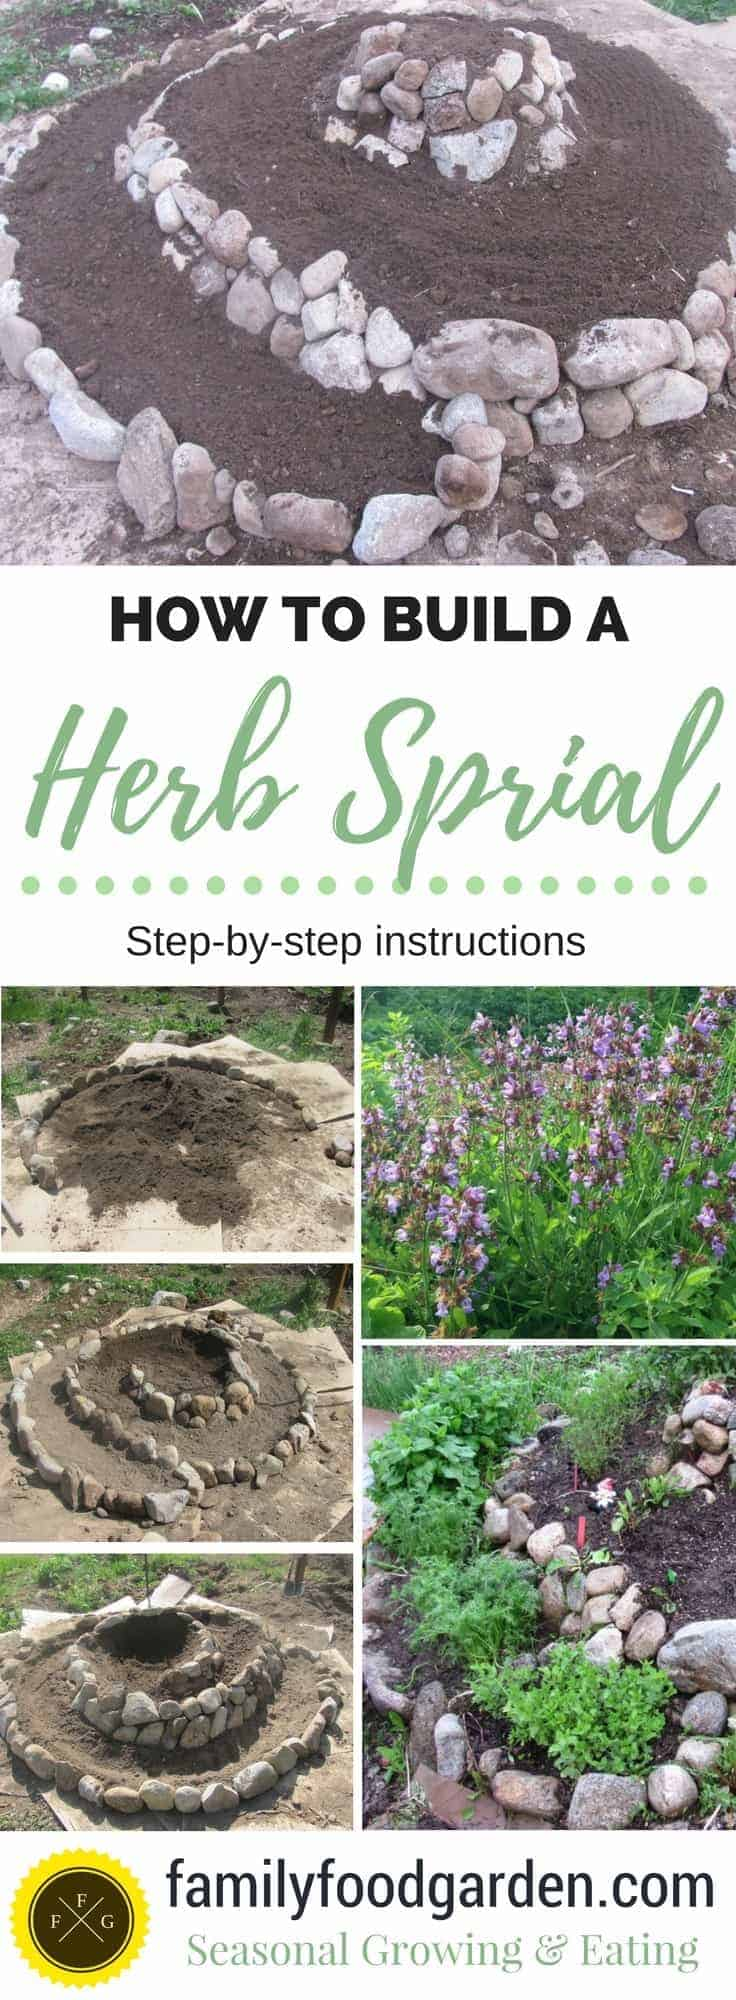 Herb Spiral: Step-by-step Instructions for how to build one